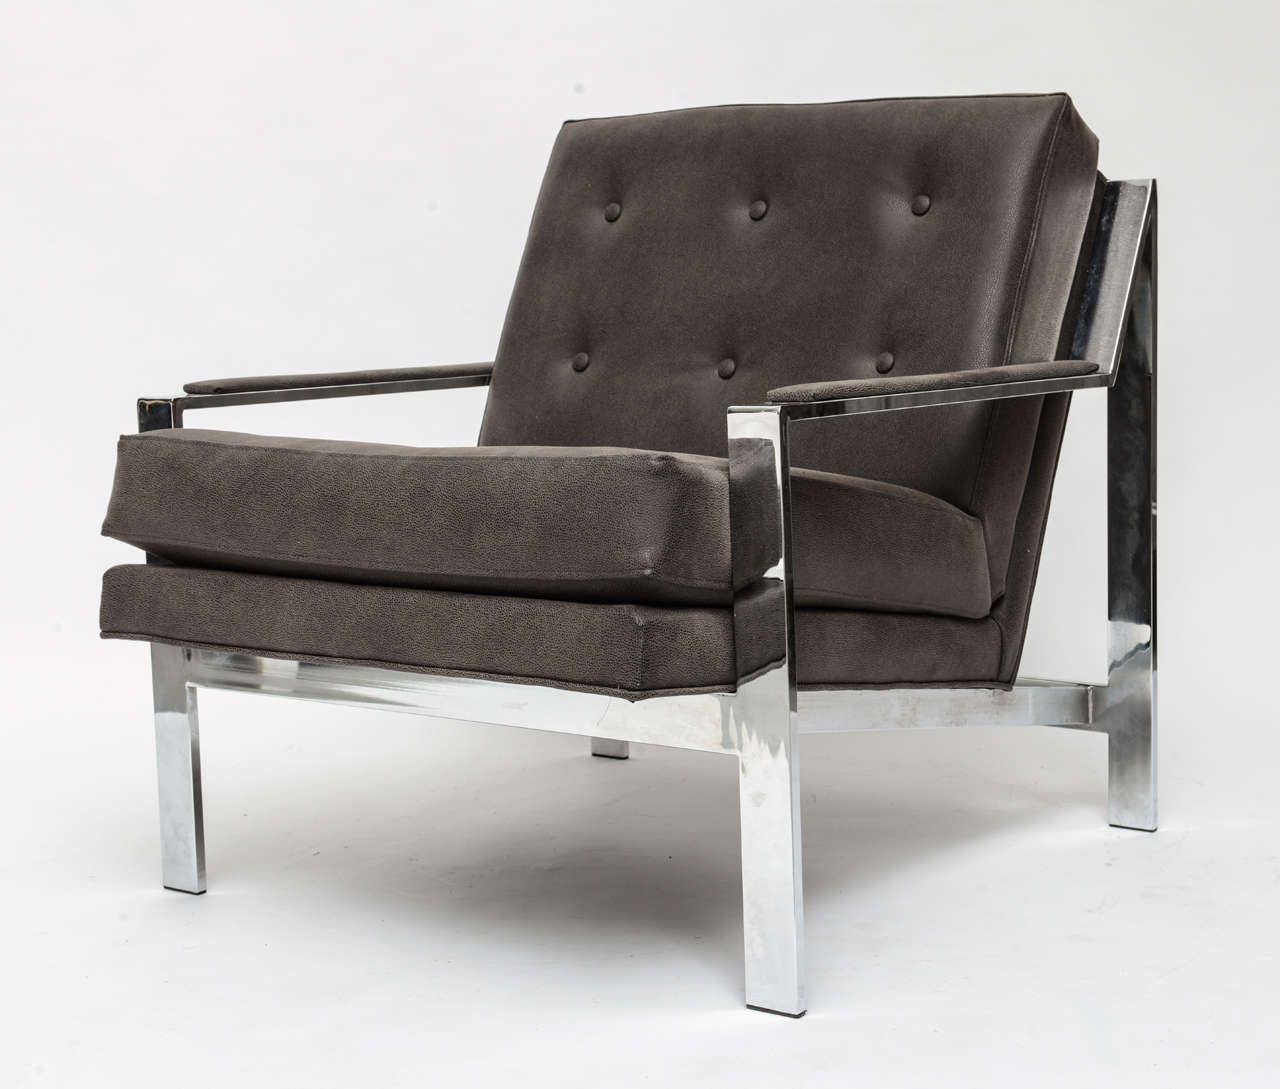 Chrome lounge chair by Cy Mann with new